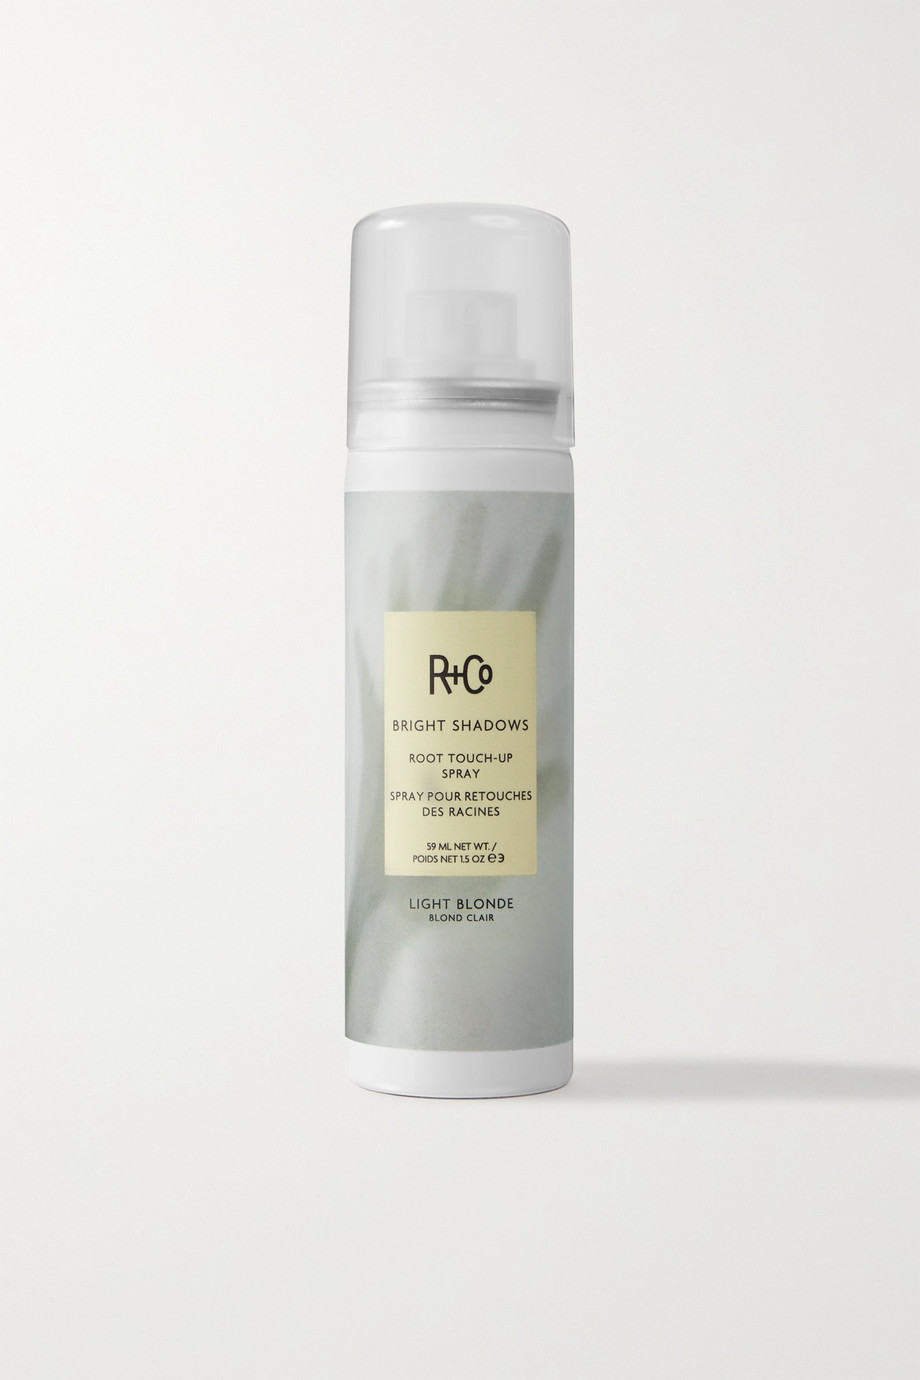 R+Co Bright Shadows Root Touch-Up Spray - Light Blonde, 59ml